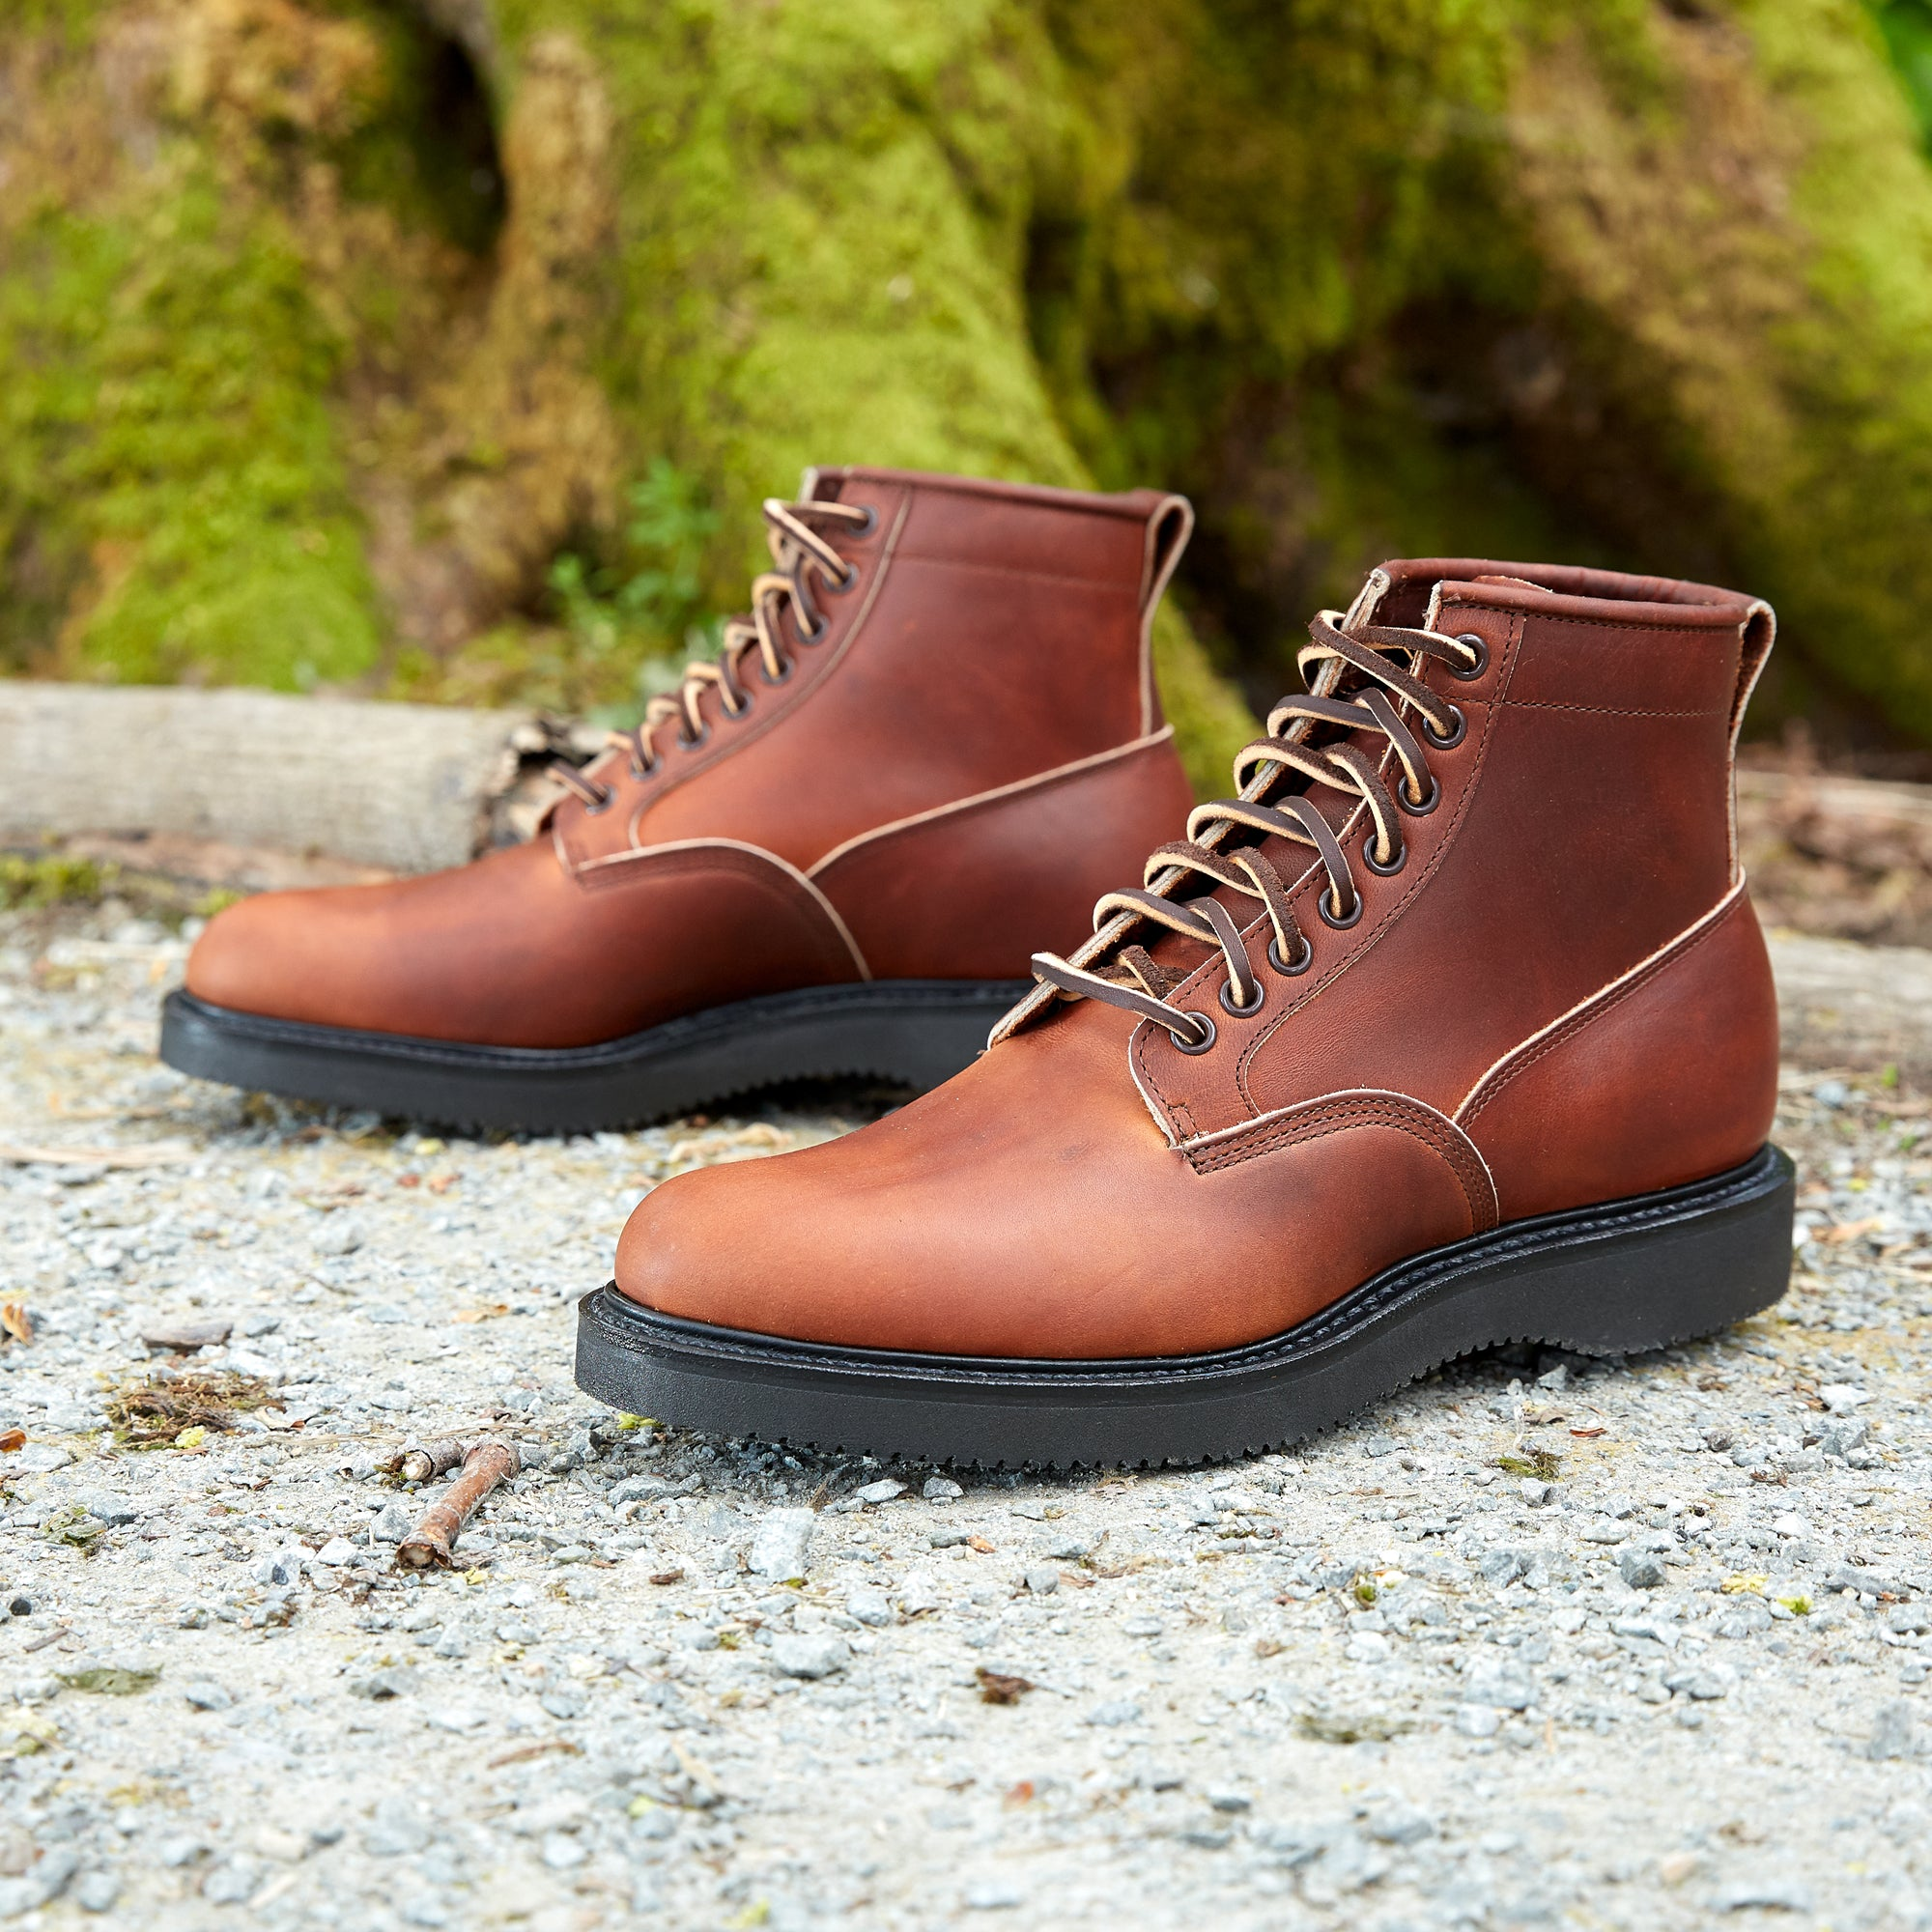 Division Road Viberg Saddle Tan Chromepak Scout Boot